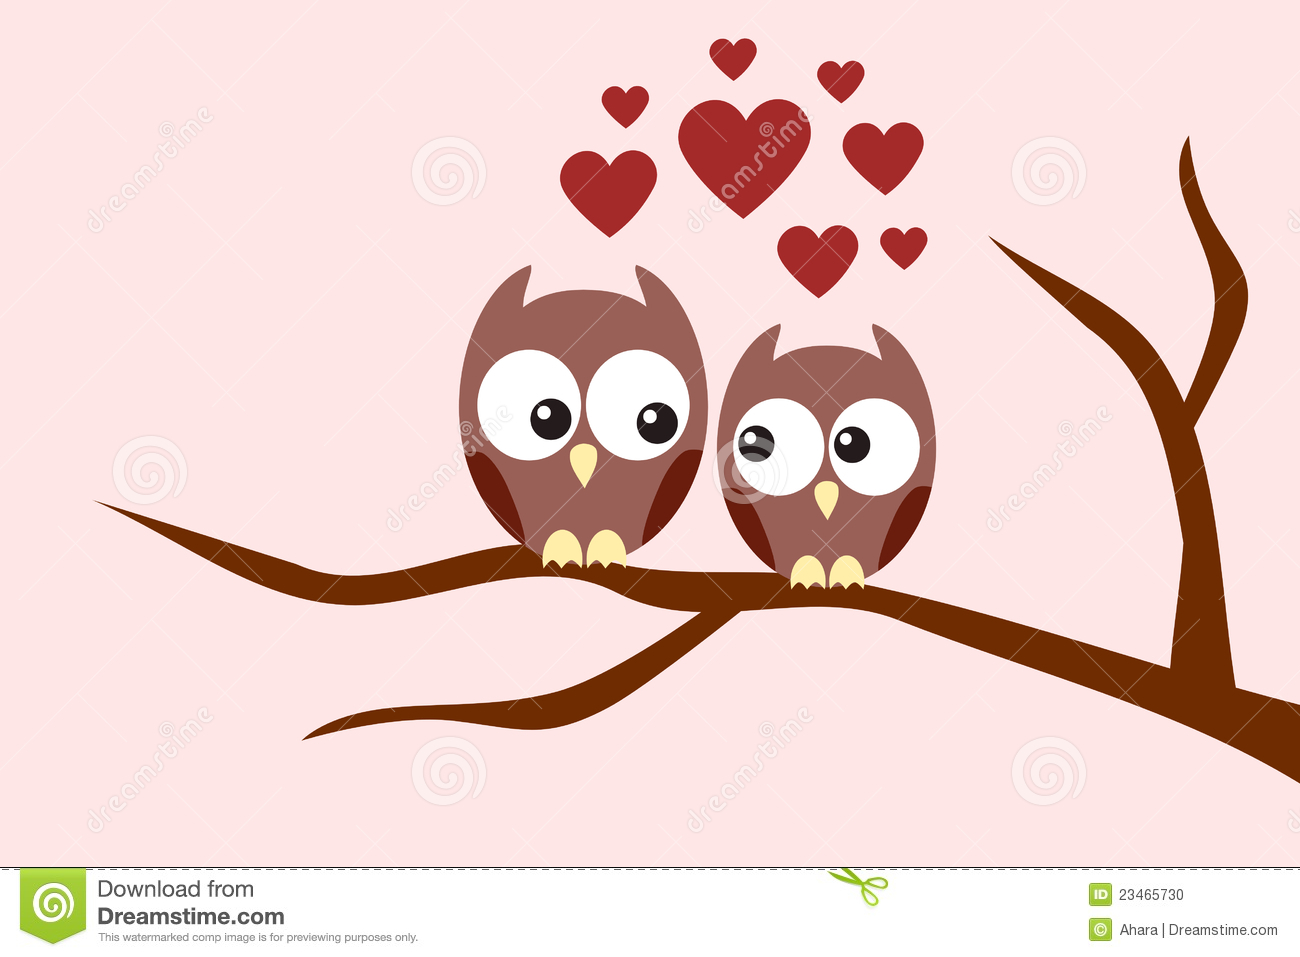 Cute owl love drawing - photo#19